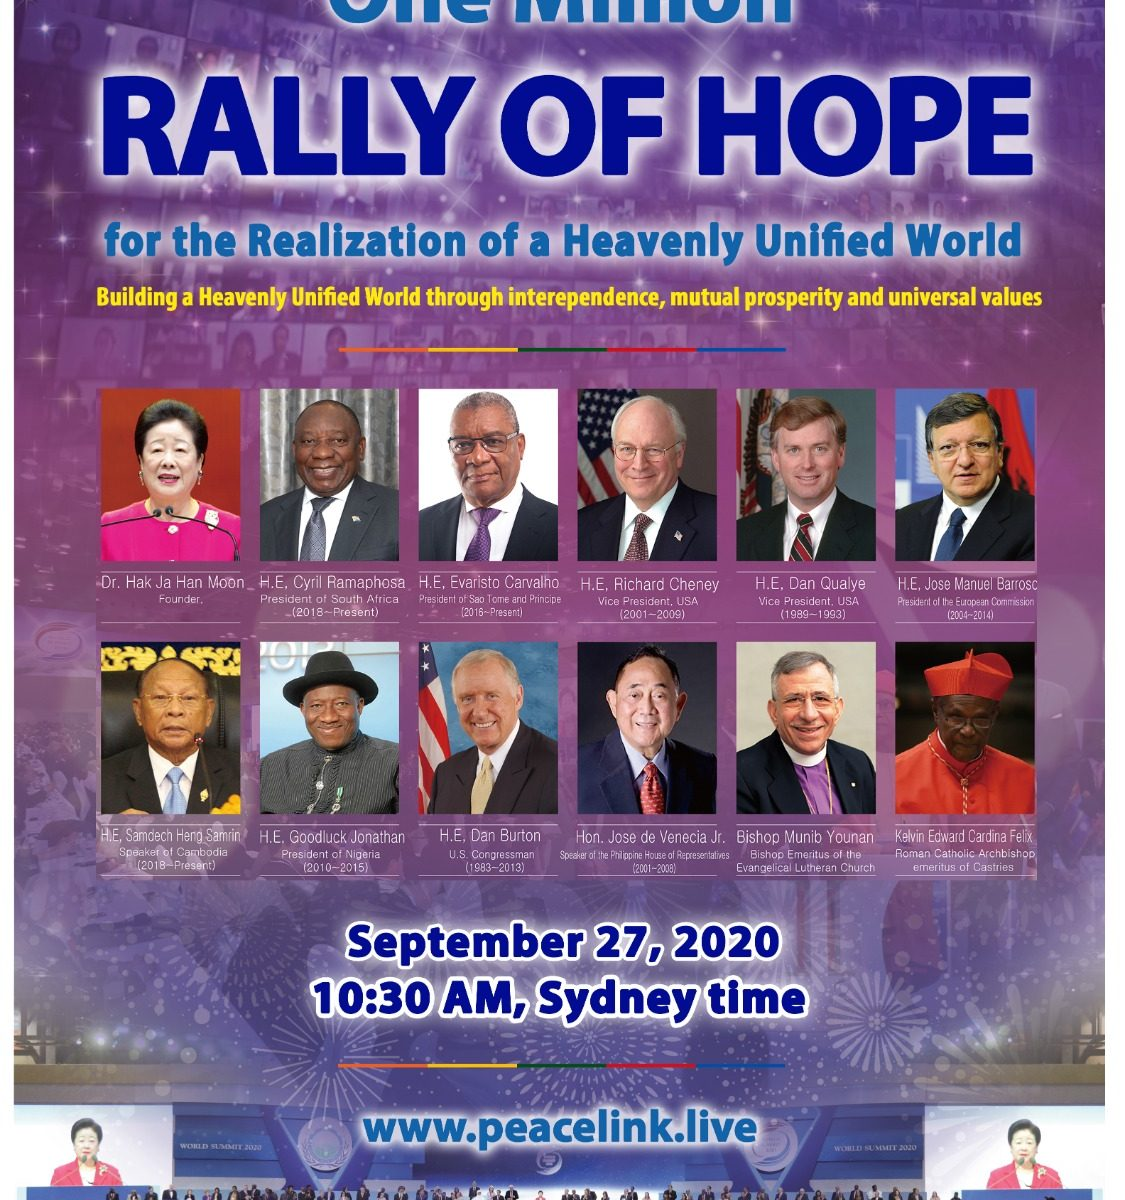 rally-of-hope-27-september-2020